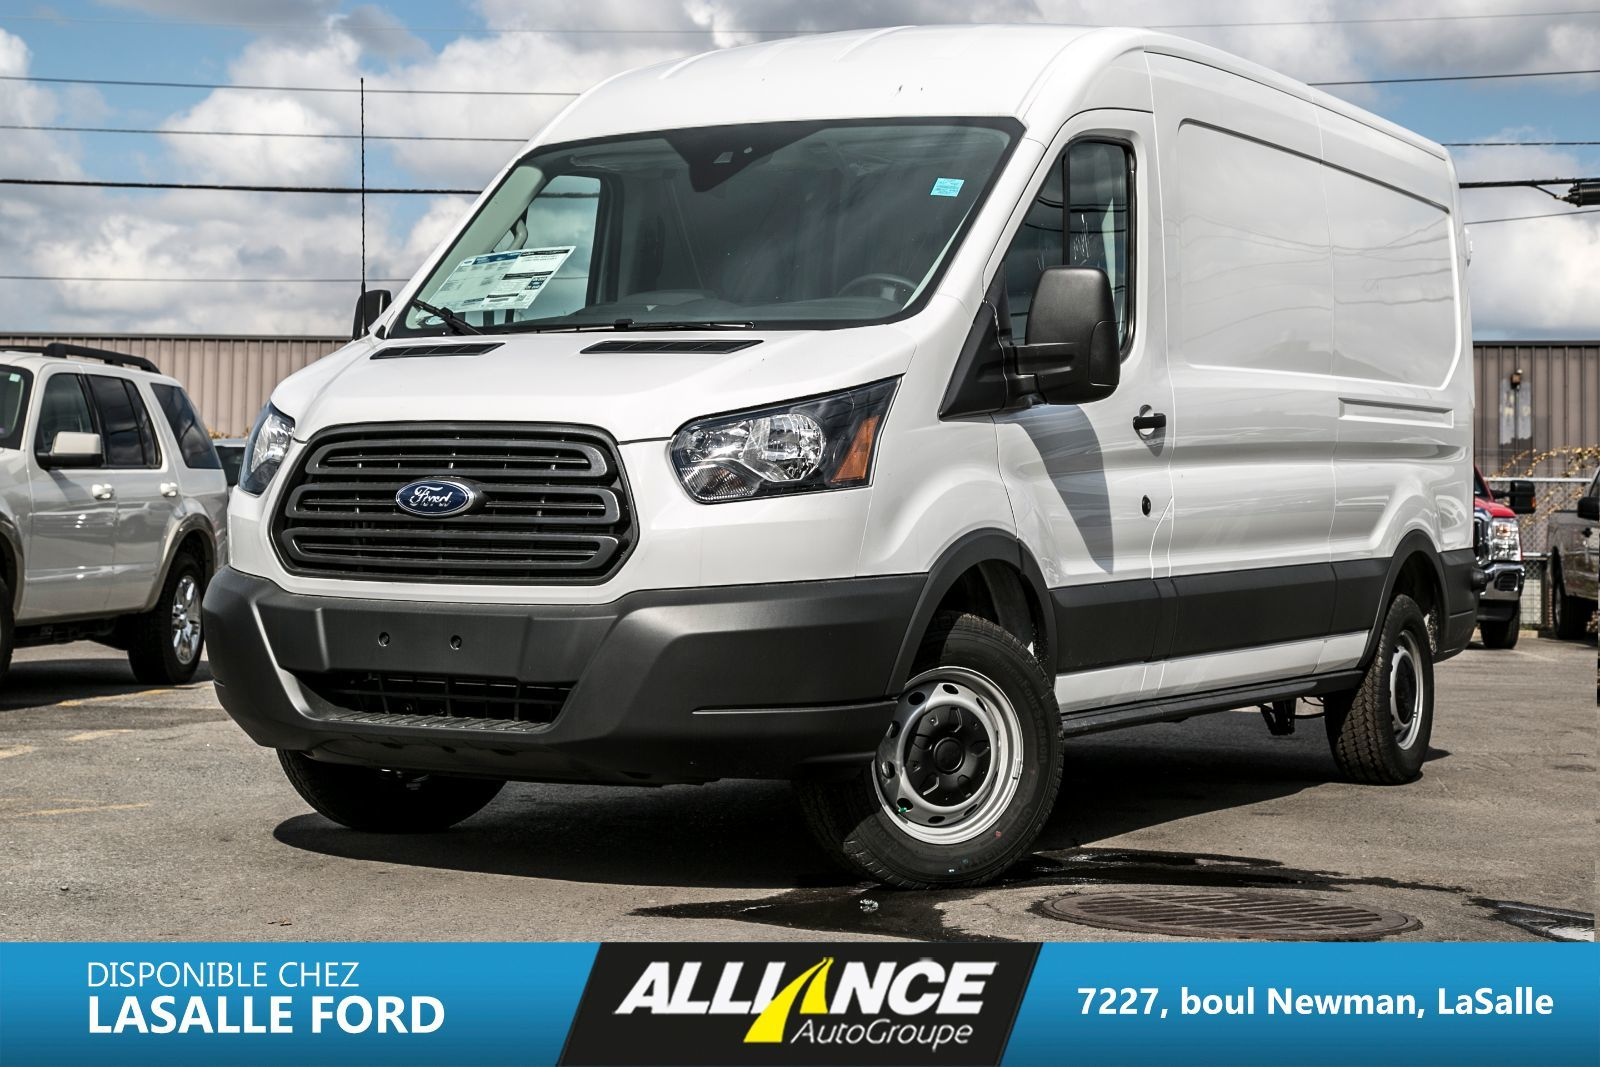 ford transit fourgon utilitaire 2016 neuf en inventaire vendre lasalle lasalle ford. Black Bedroom Furniture Sets. Home Design Ideas